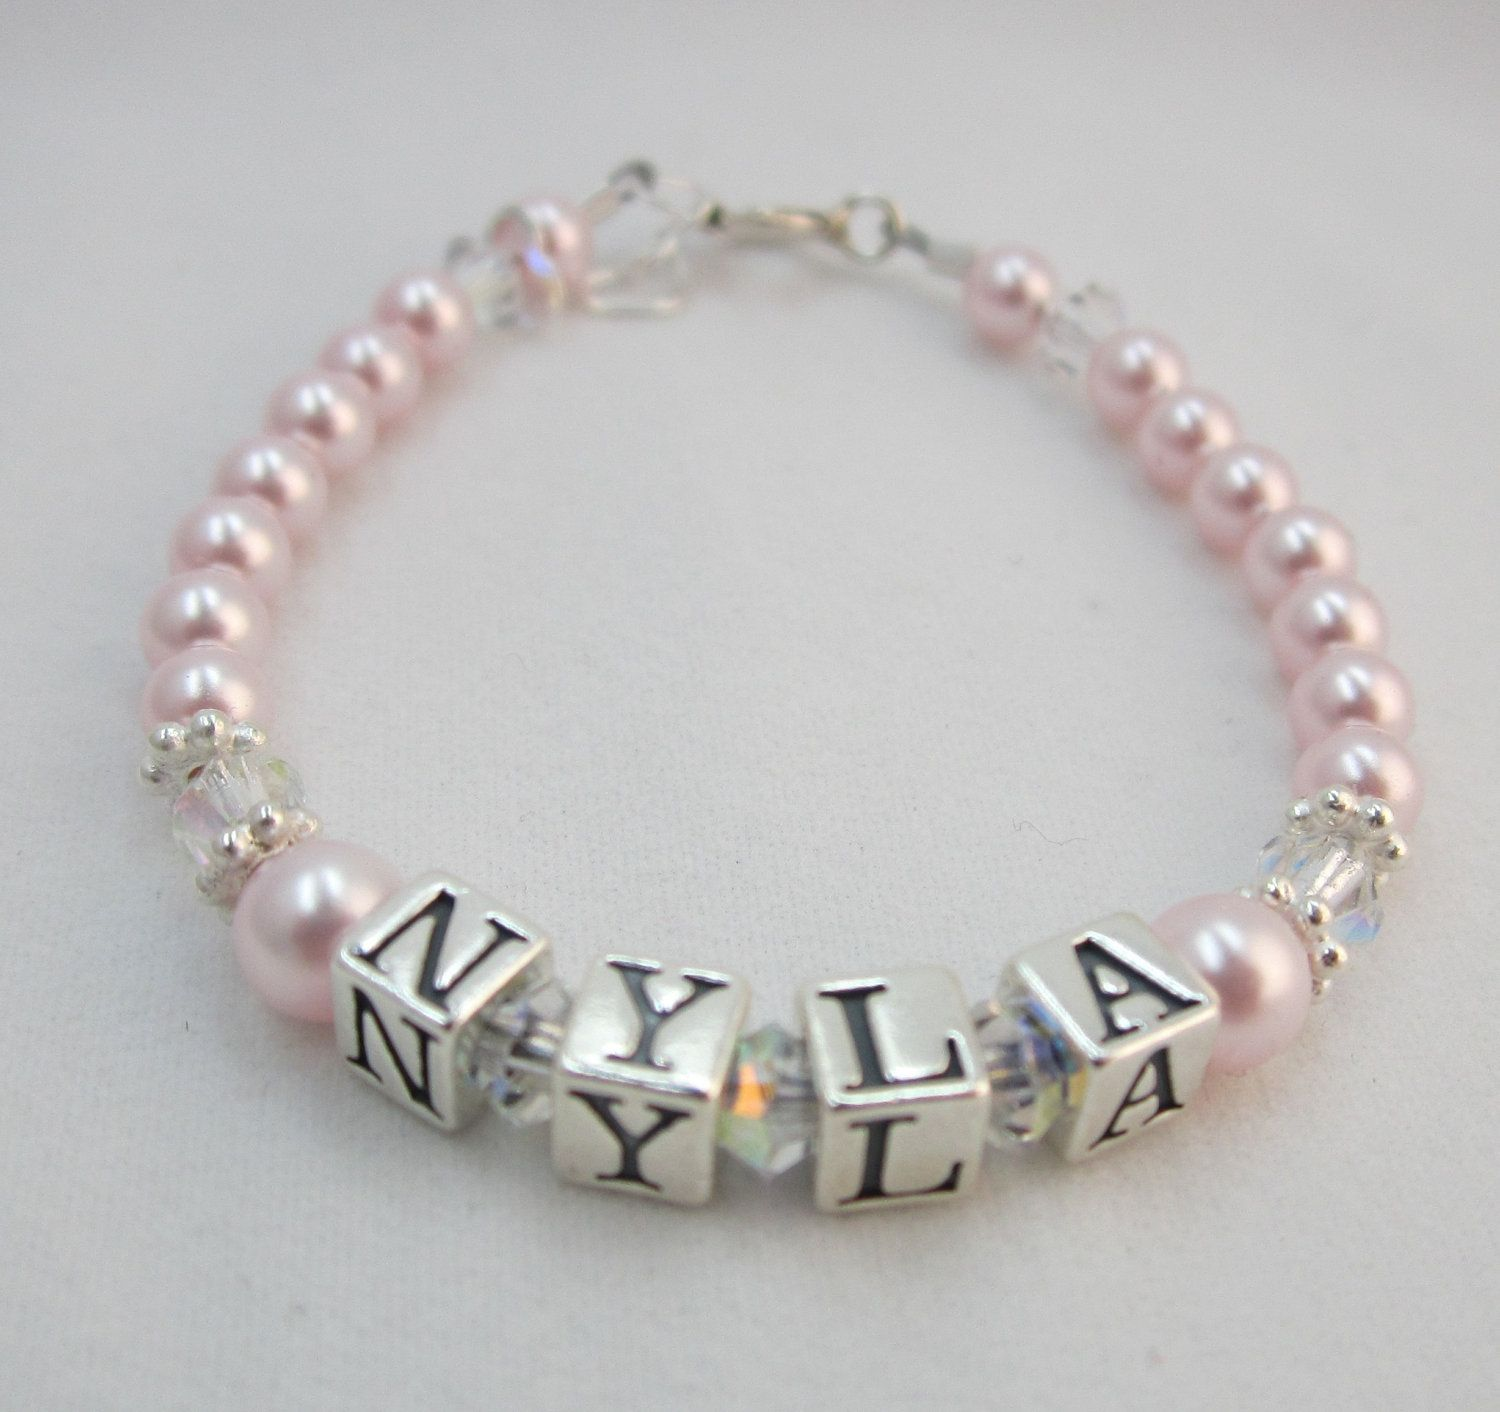 Baby girl name bracelet with the name alex and i adore didnt baby girl gift name bracelet sterling silver first birthday personalized pearls infant jewelry children bpnp negle Image collections